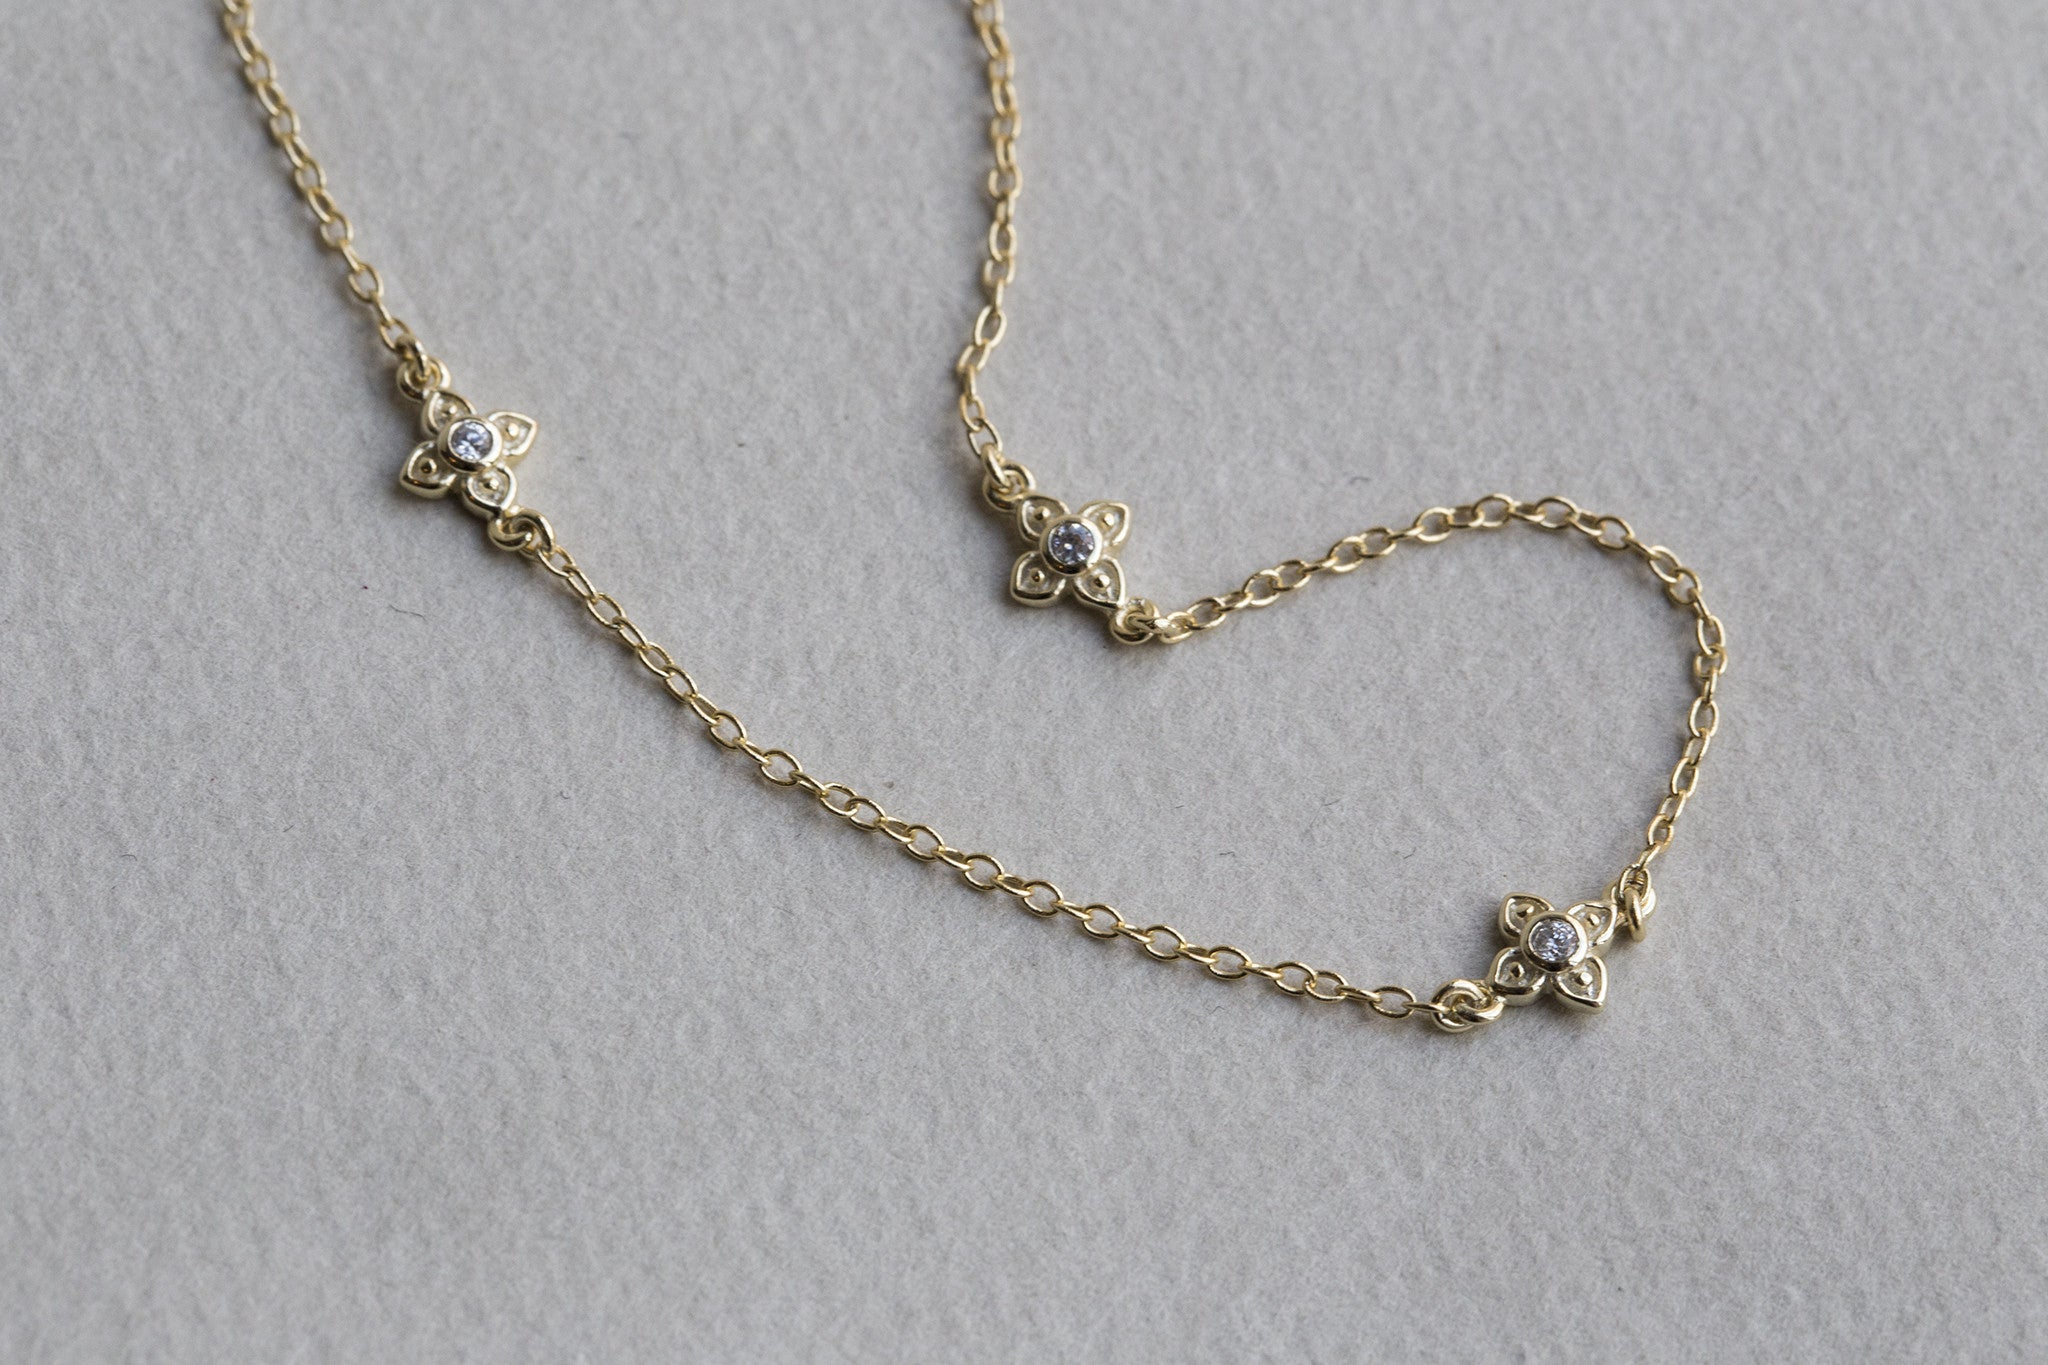 the clover design is based on a vintage jewellery